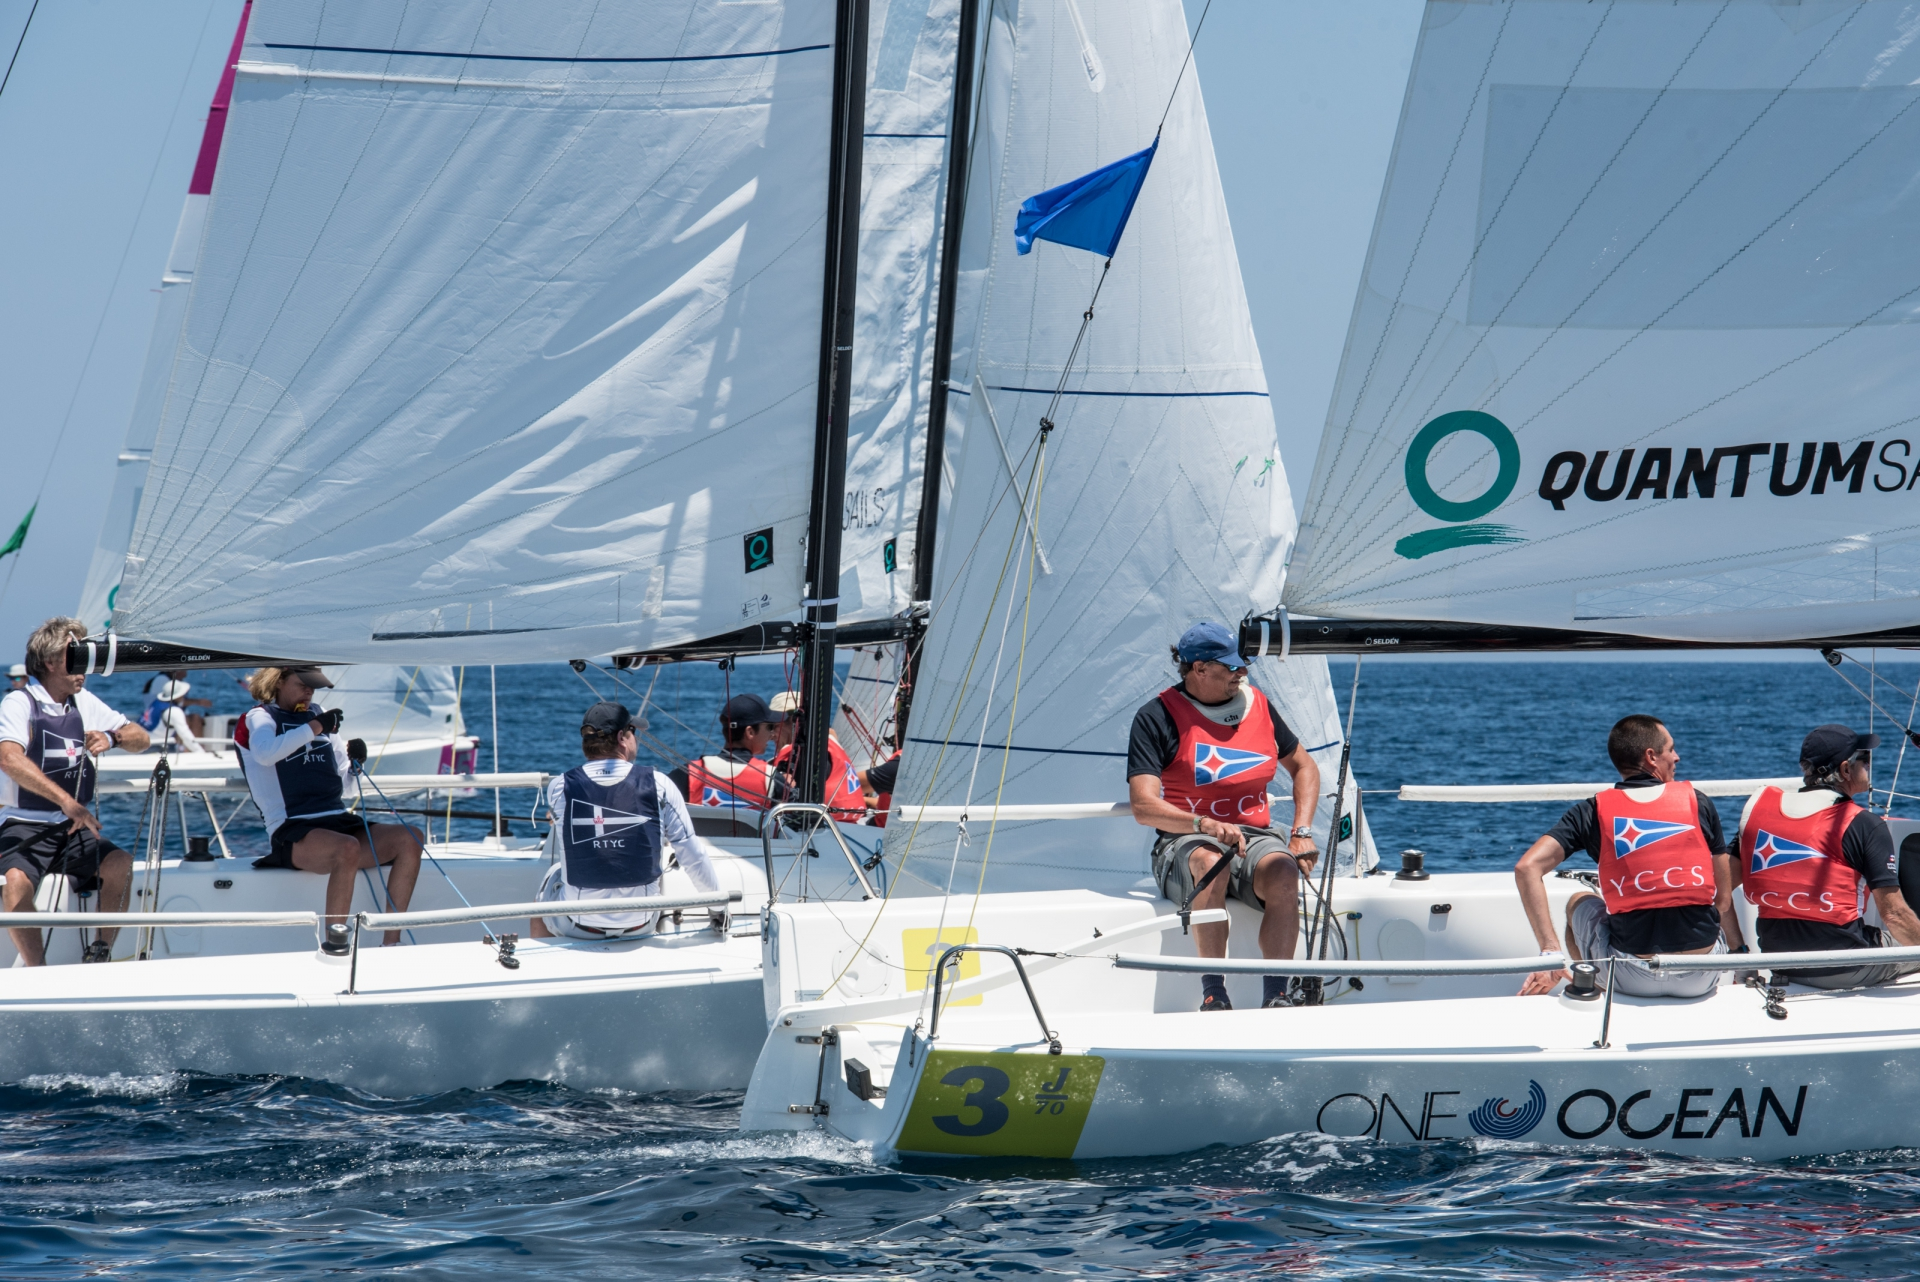 Audi Invitational Team Racing Challenge: YCCS team takes early lead - NEWS - Yacht Club Costa Smeralda